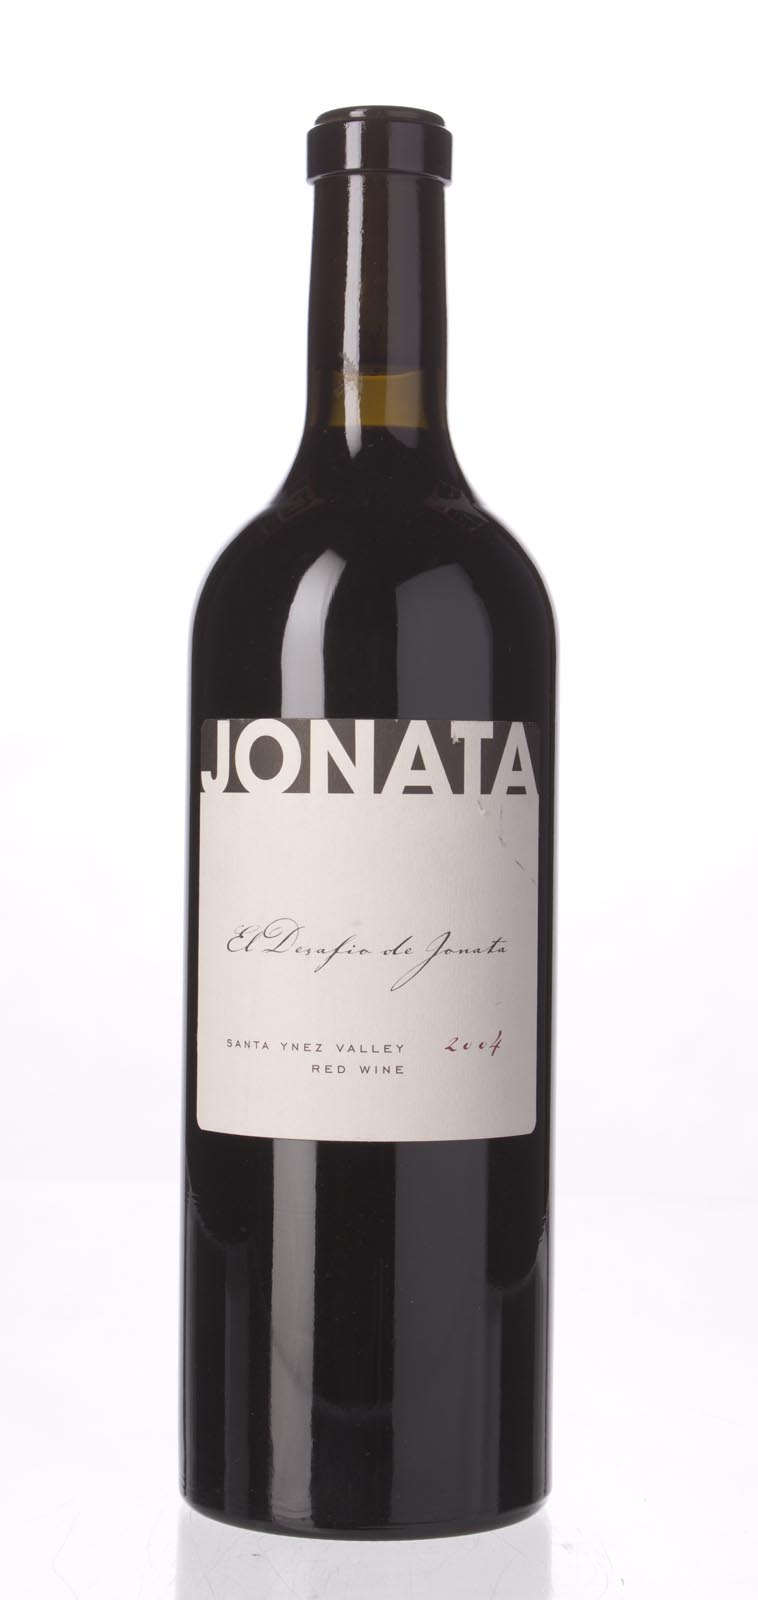 Jonata Proprietary Red El Desafio de Jonata 2004, 750mL (WA91) from The BPW - Merchants of rare and fine wines.